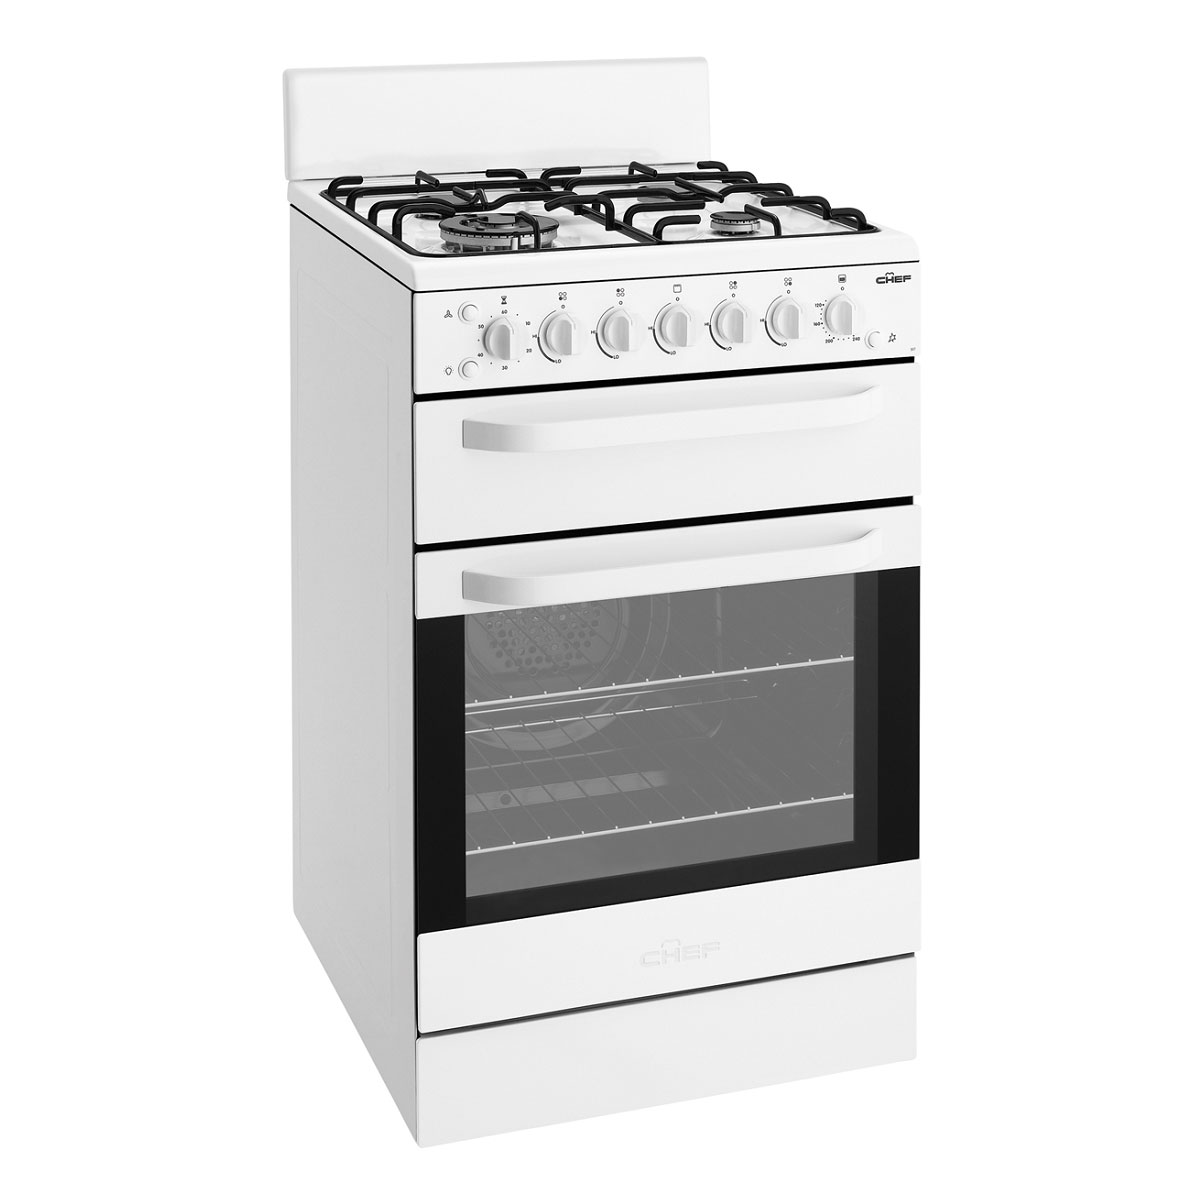 Freestanding Chef Gas Oven/Stove CFG517WALP